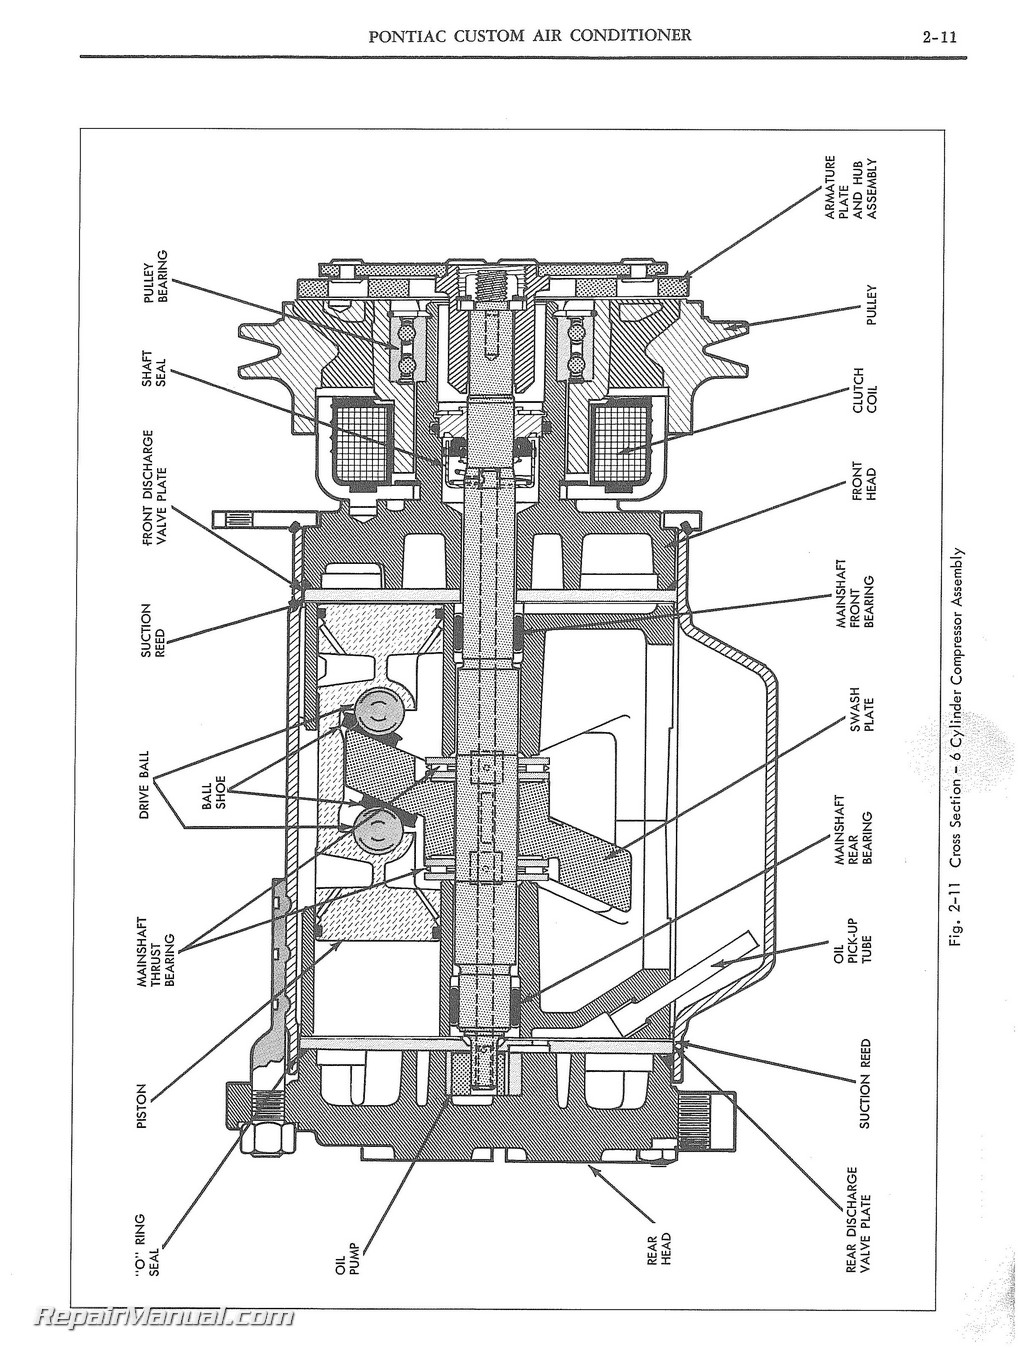 1993 Acura Vigor Engine Diagram. Acura. Auto Wiring Diagram